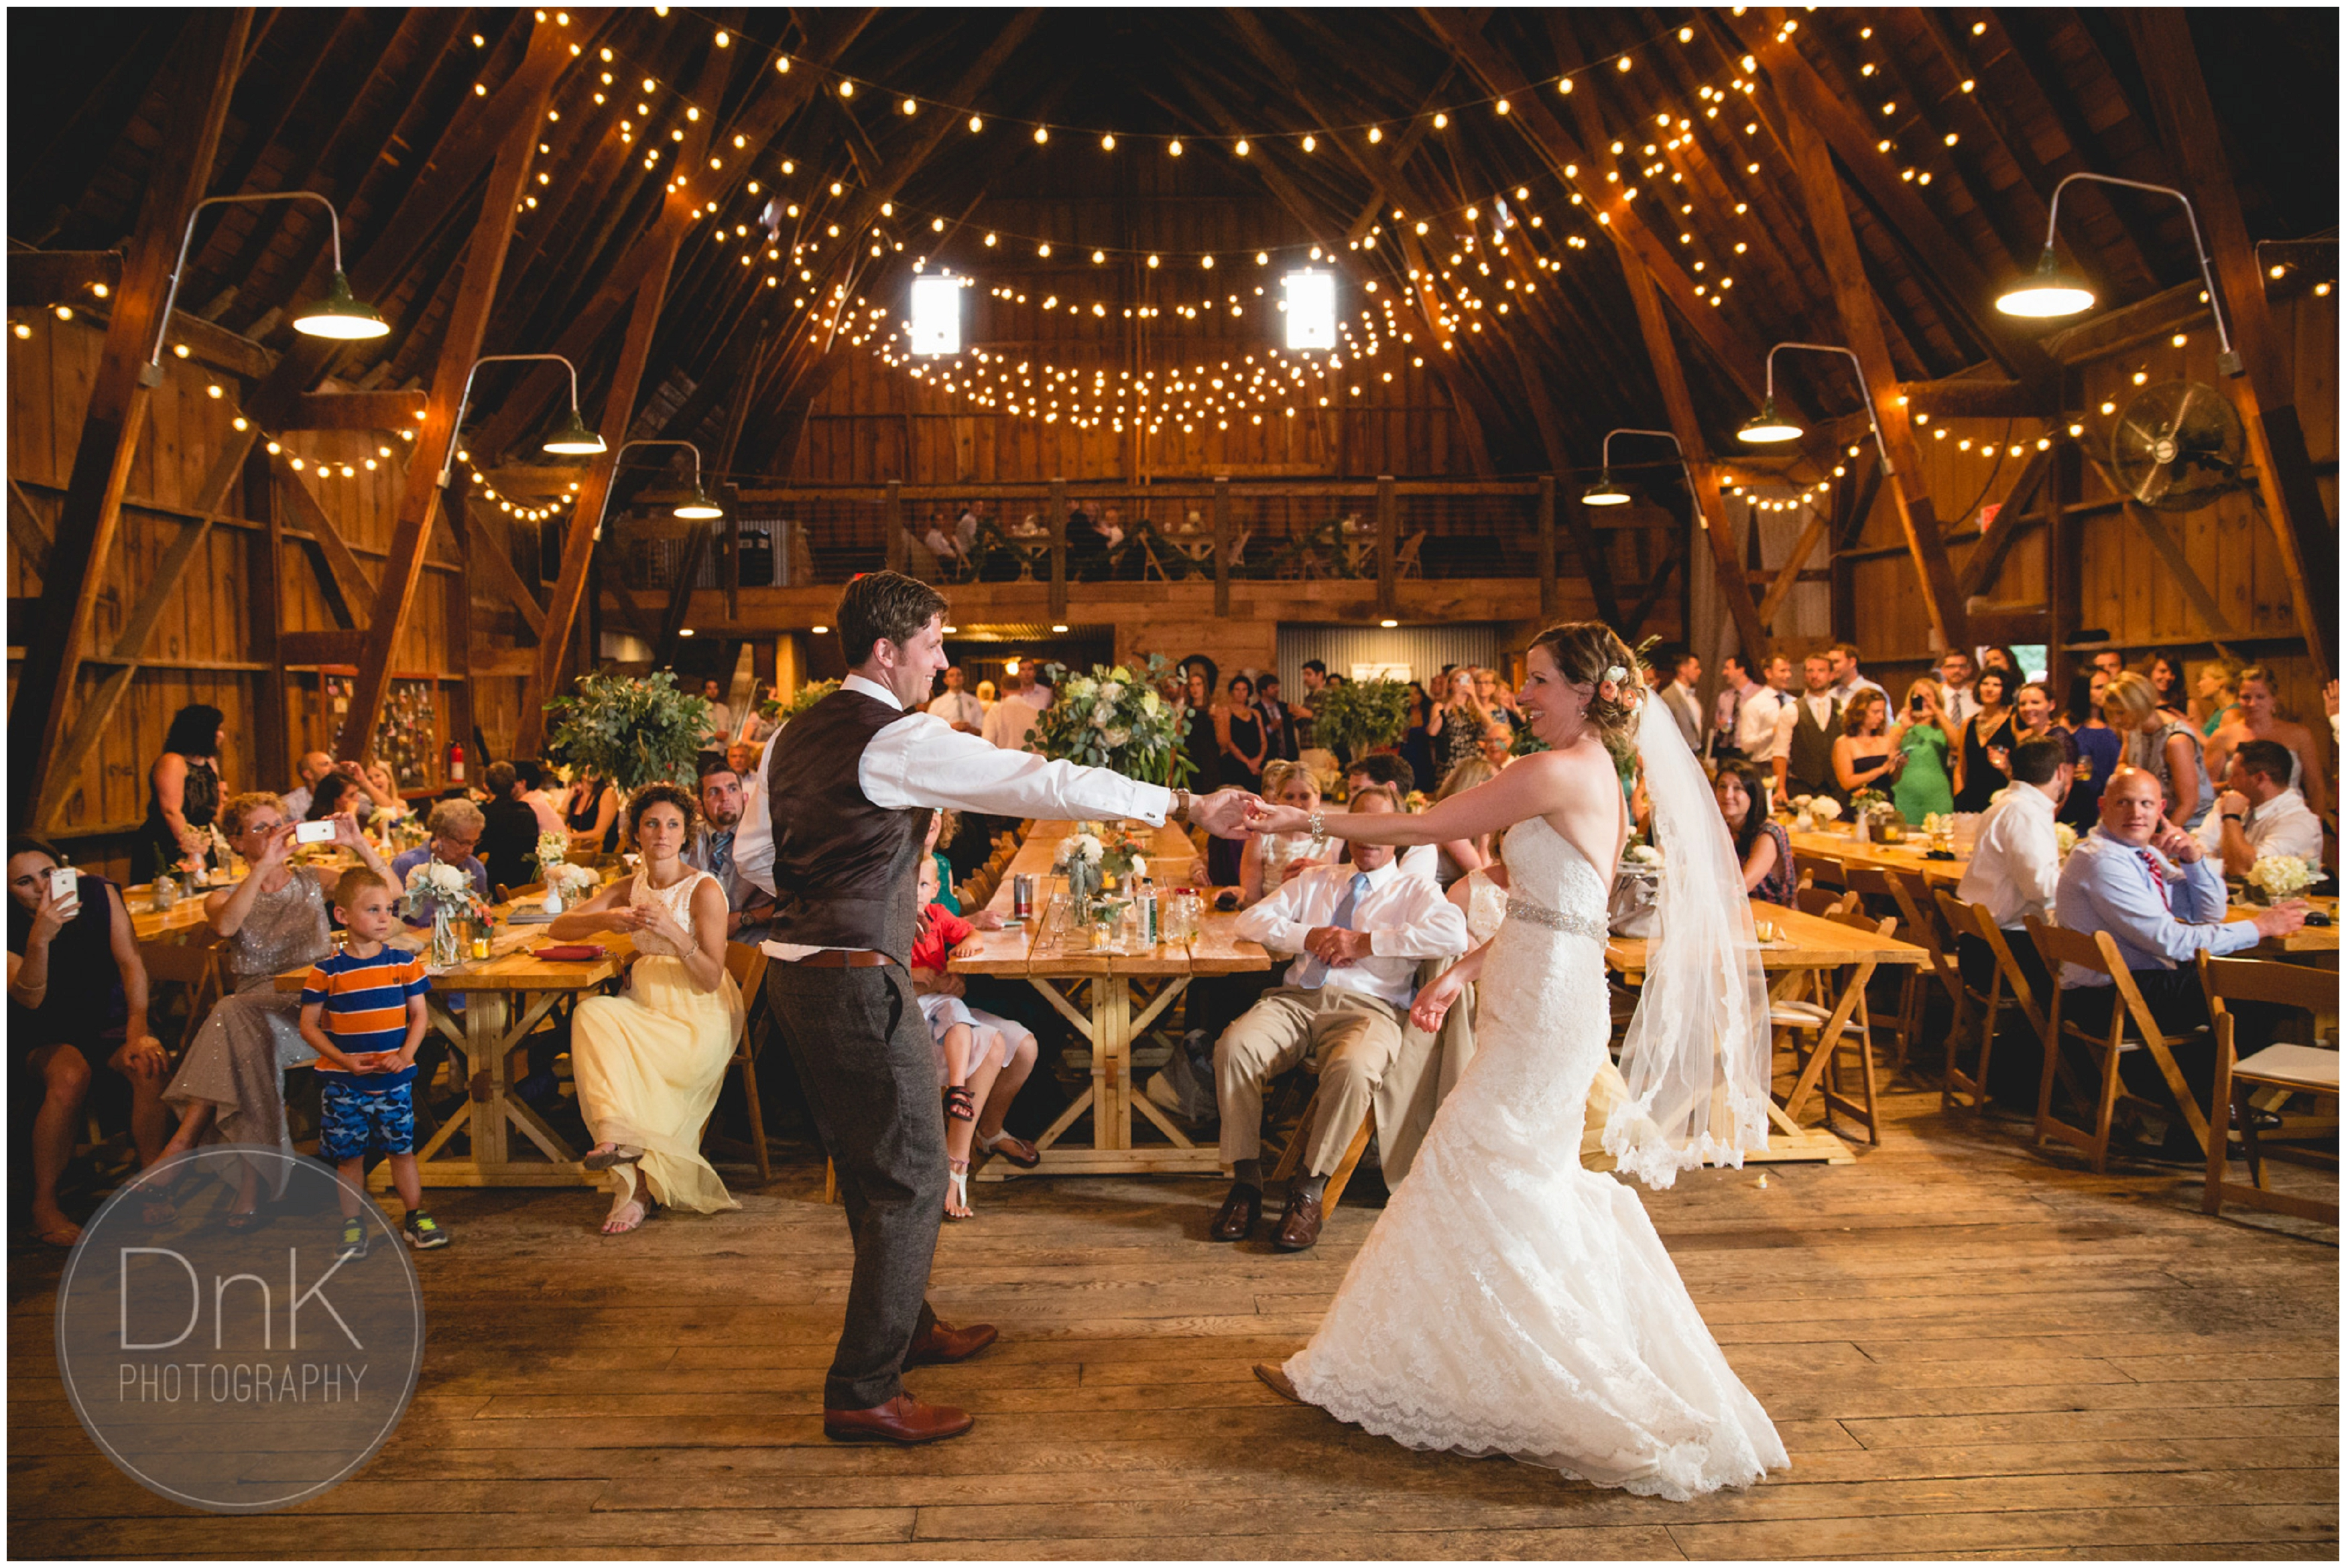 50 - Dellwood Barn Wedding Reception